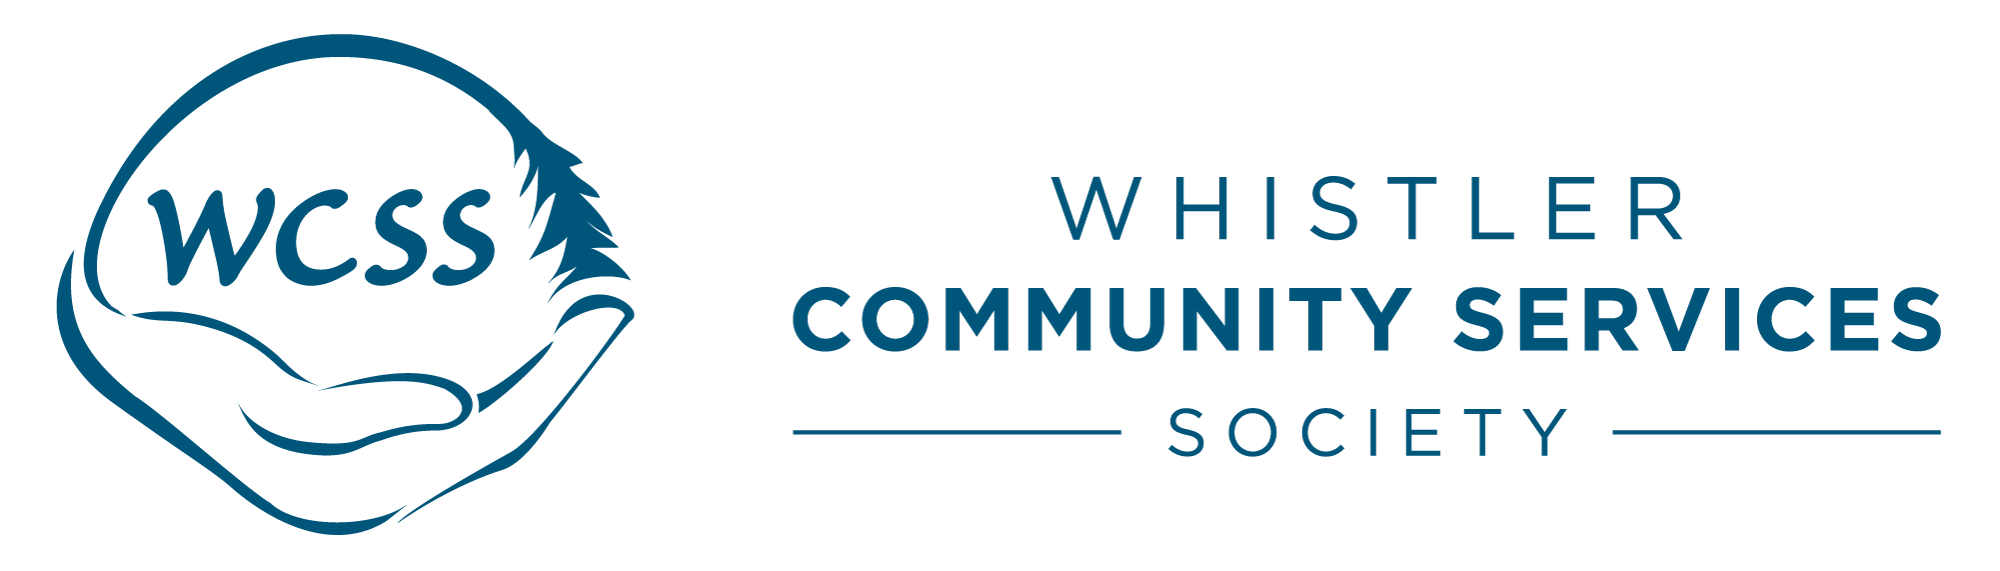 Whistler Community Services